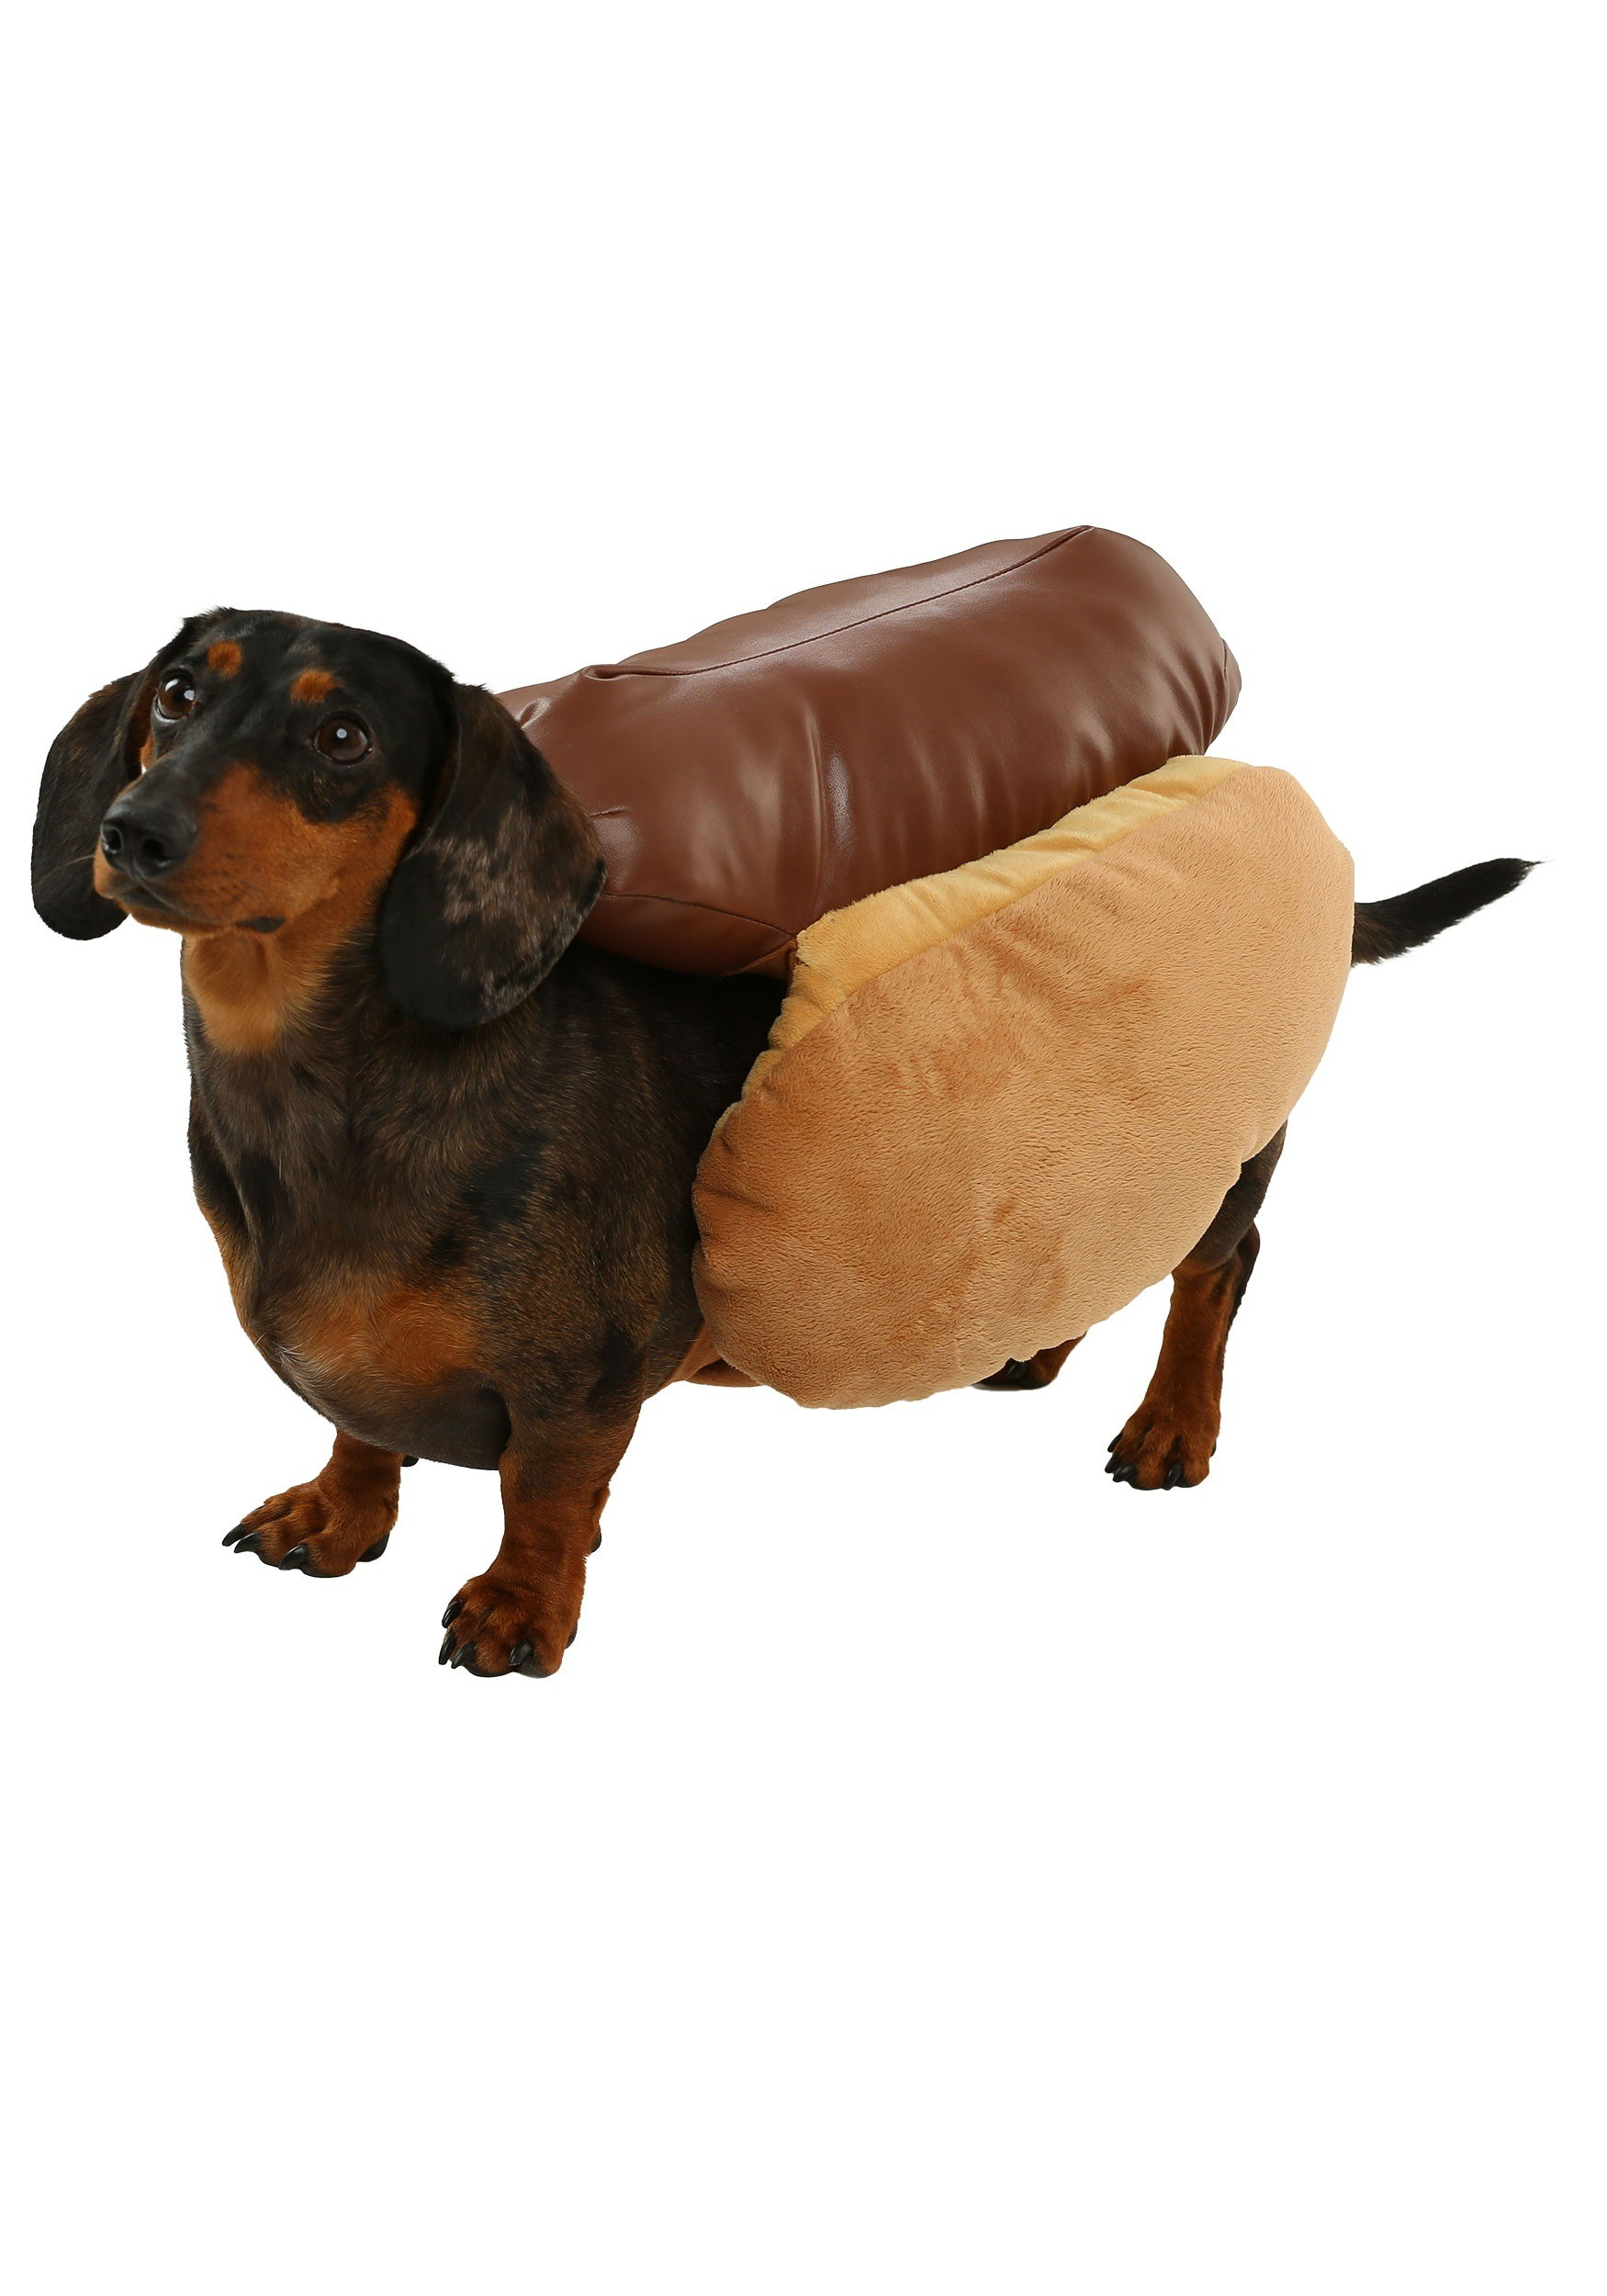 Hot Dog Halloween Costume For Dogs  Hot Dog Costume for Dogs